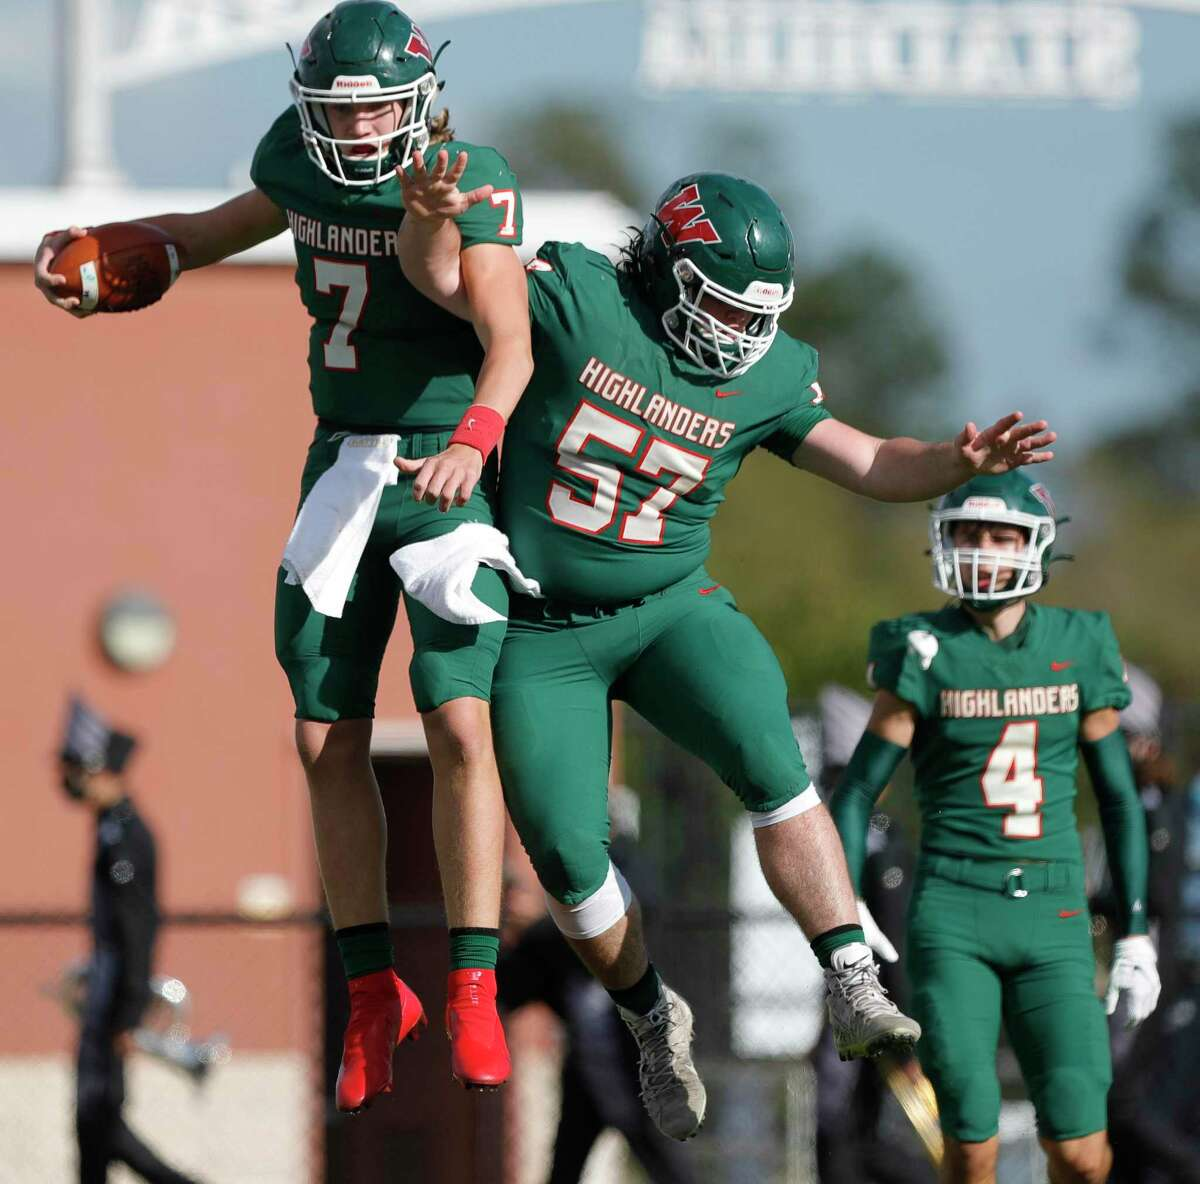 The Woodlands backup quarterback Mabrey Mettauer (7) celebrates with offensive linemen Titan Tucker (57) after running for a 6-yard touchdown during the second quarter of a District 13-6A high school football game at Woodforest Bank Stadium, Saturday, Nov. 21, 2020, in Shenandoah.